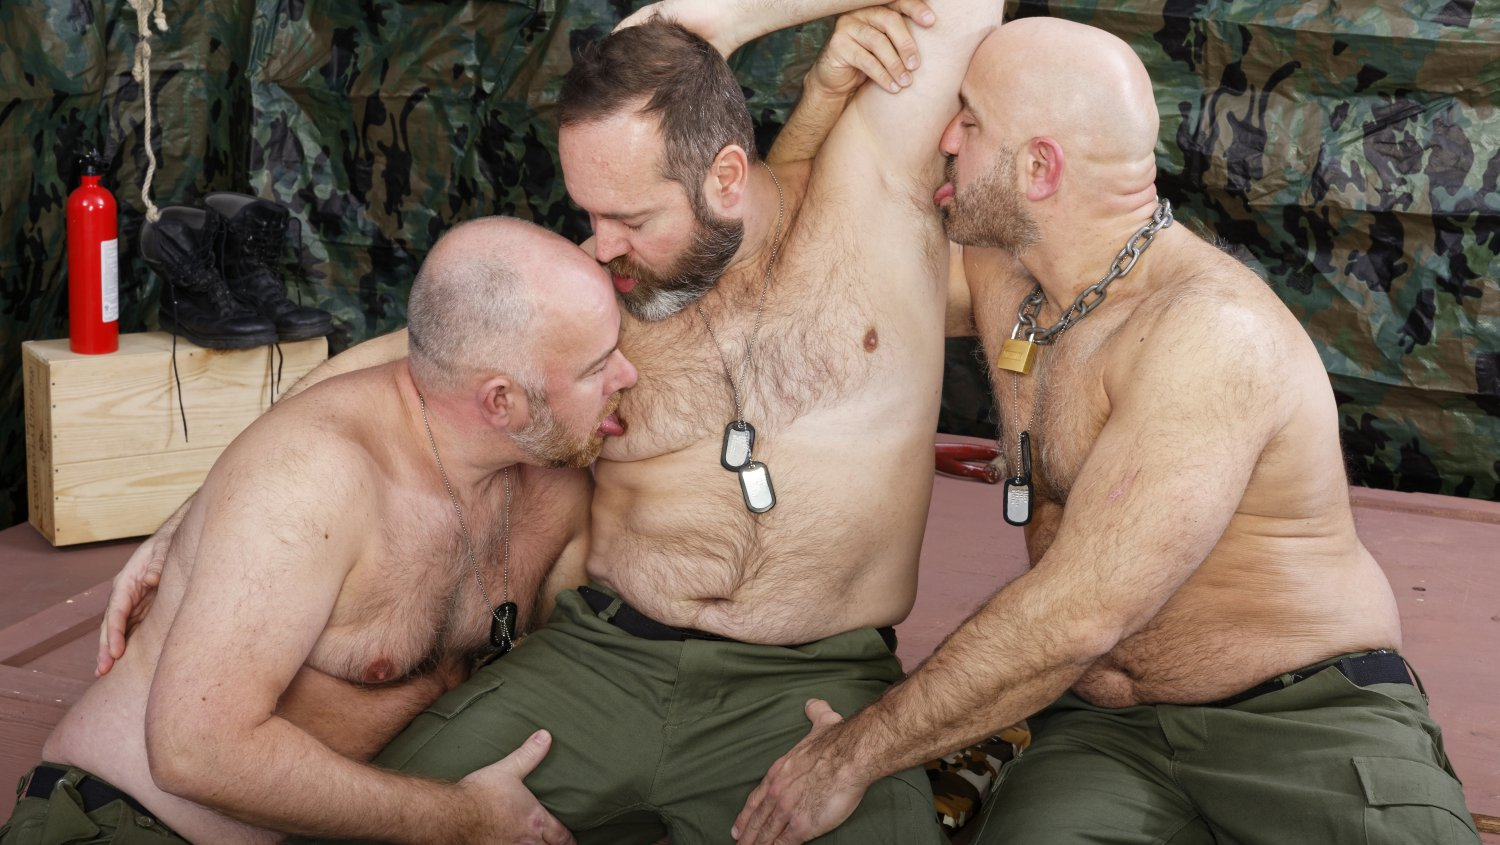 Guy English, Joe Hardness and Sam Wyze - BearFilms Is my site up or down